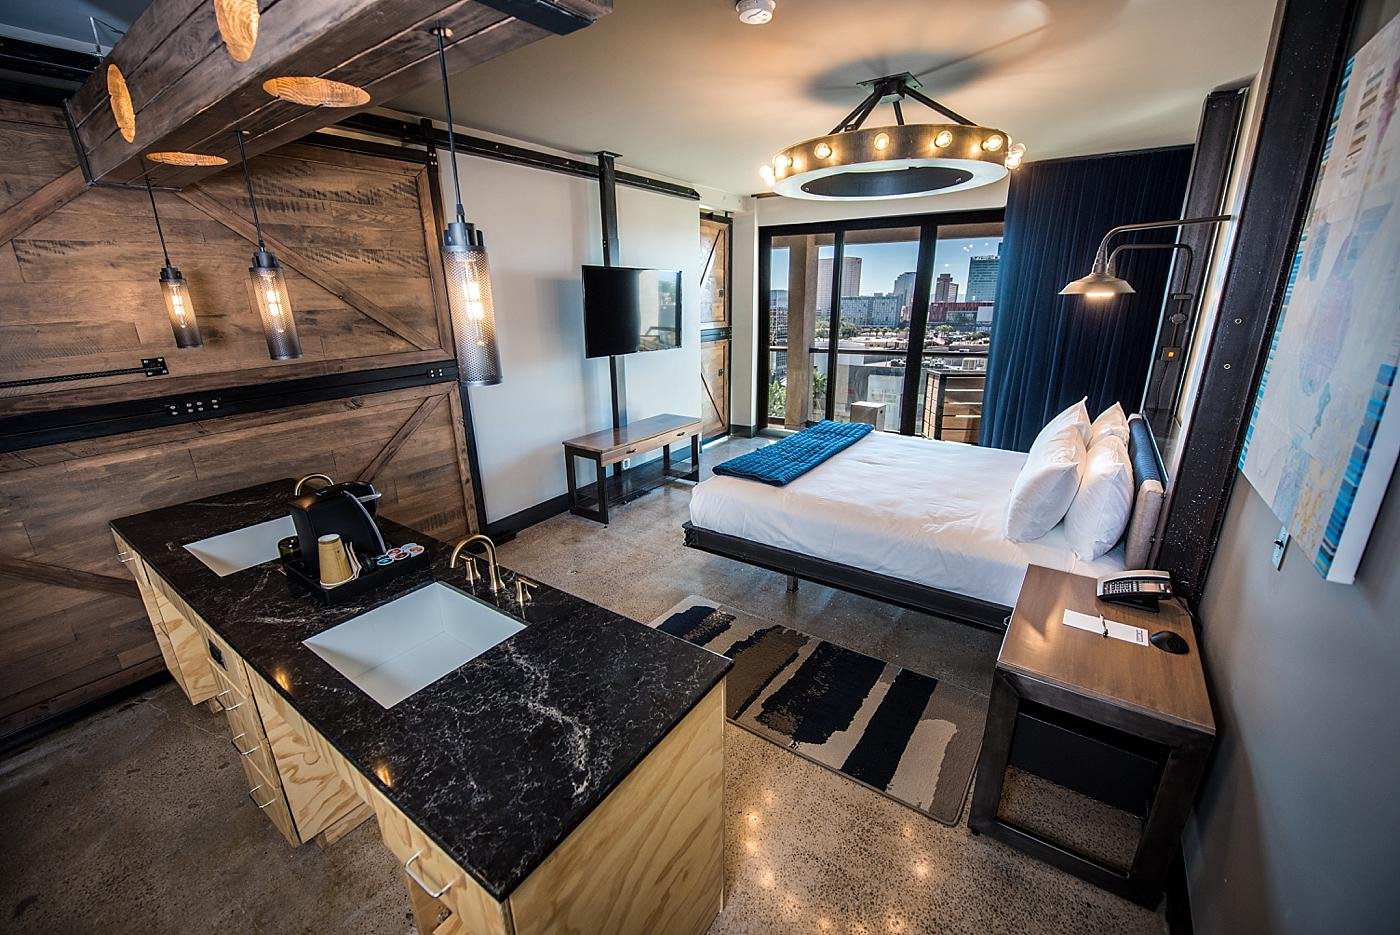 0018-foundre-phoenix-hotel-commercial-photography-2016ther2studio